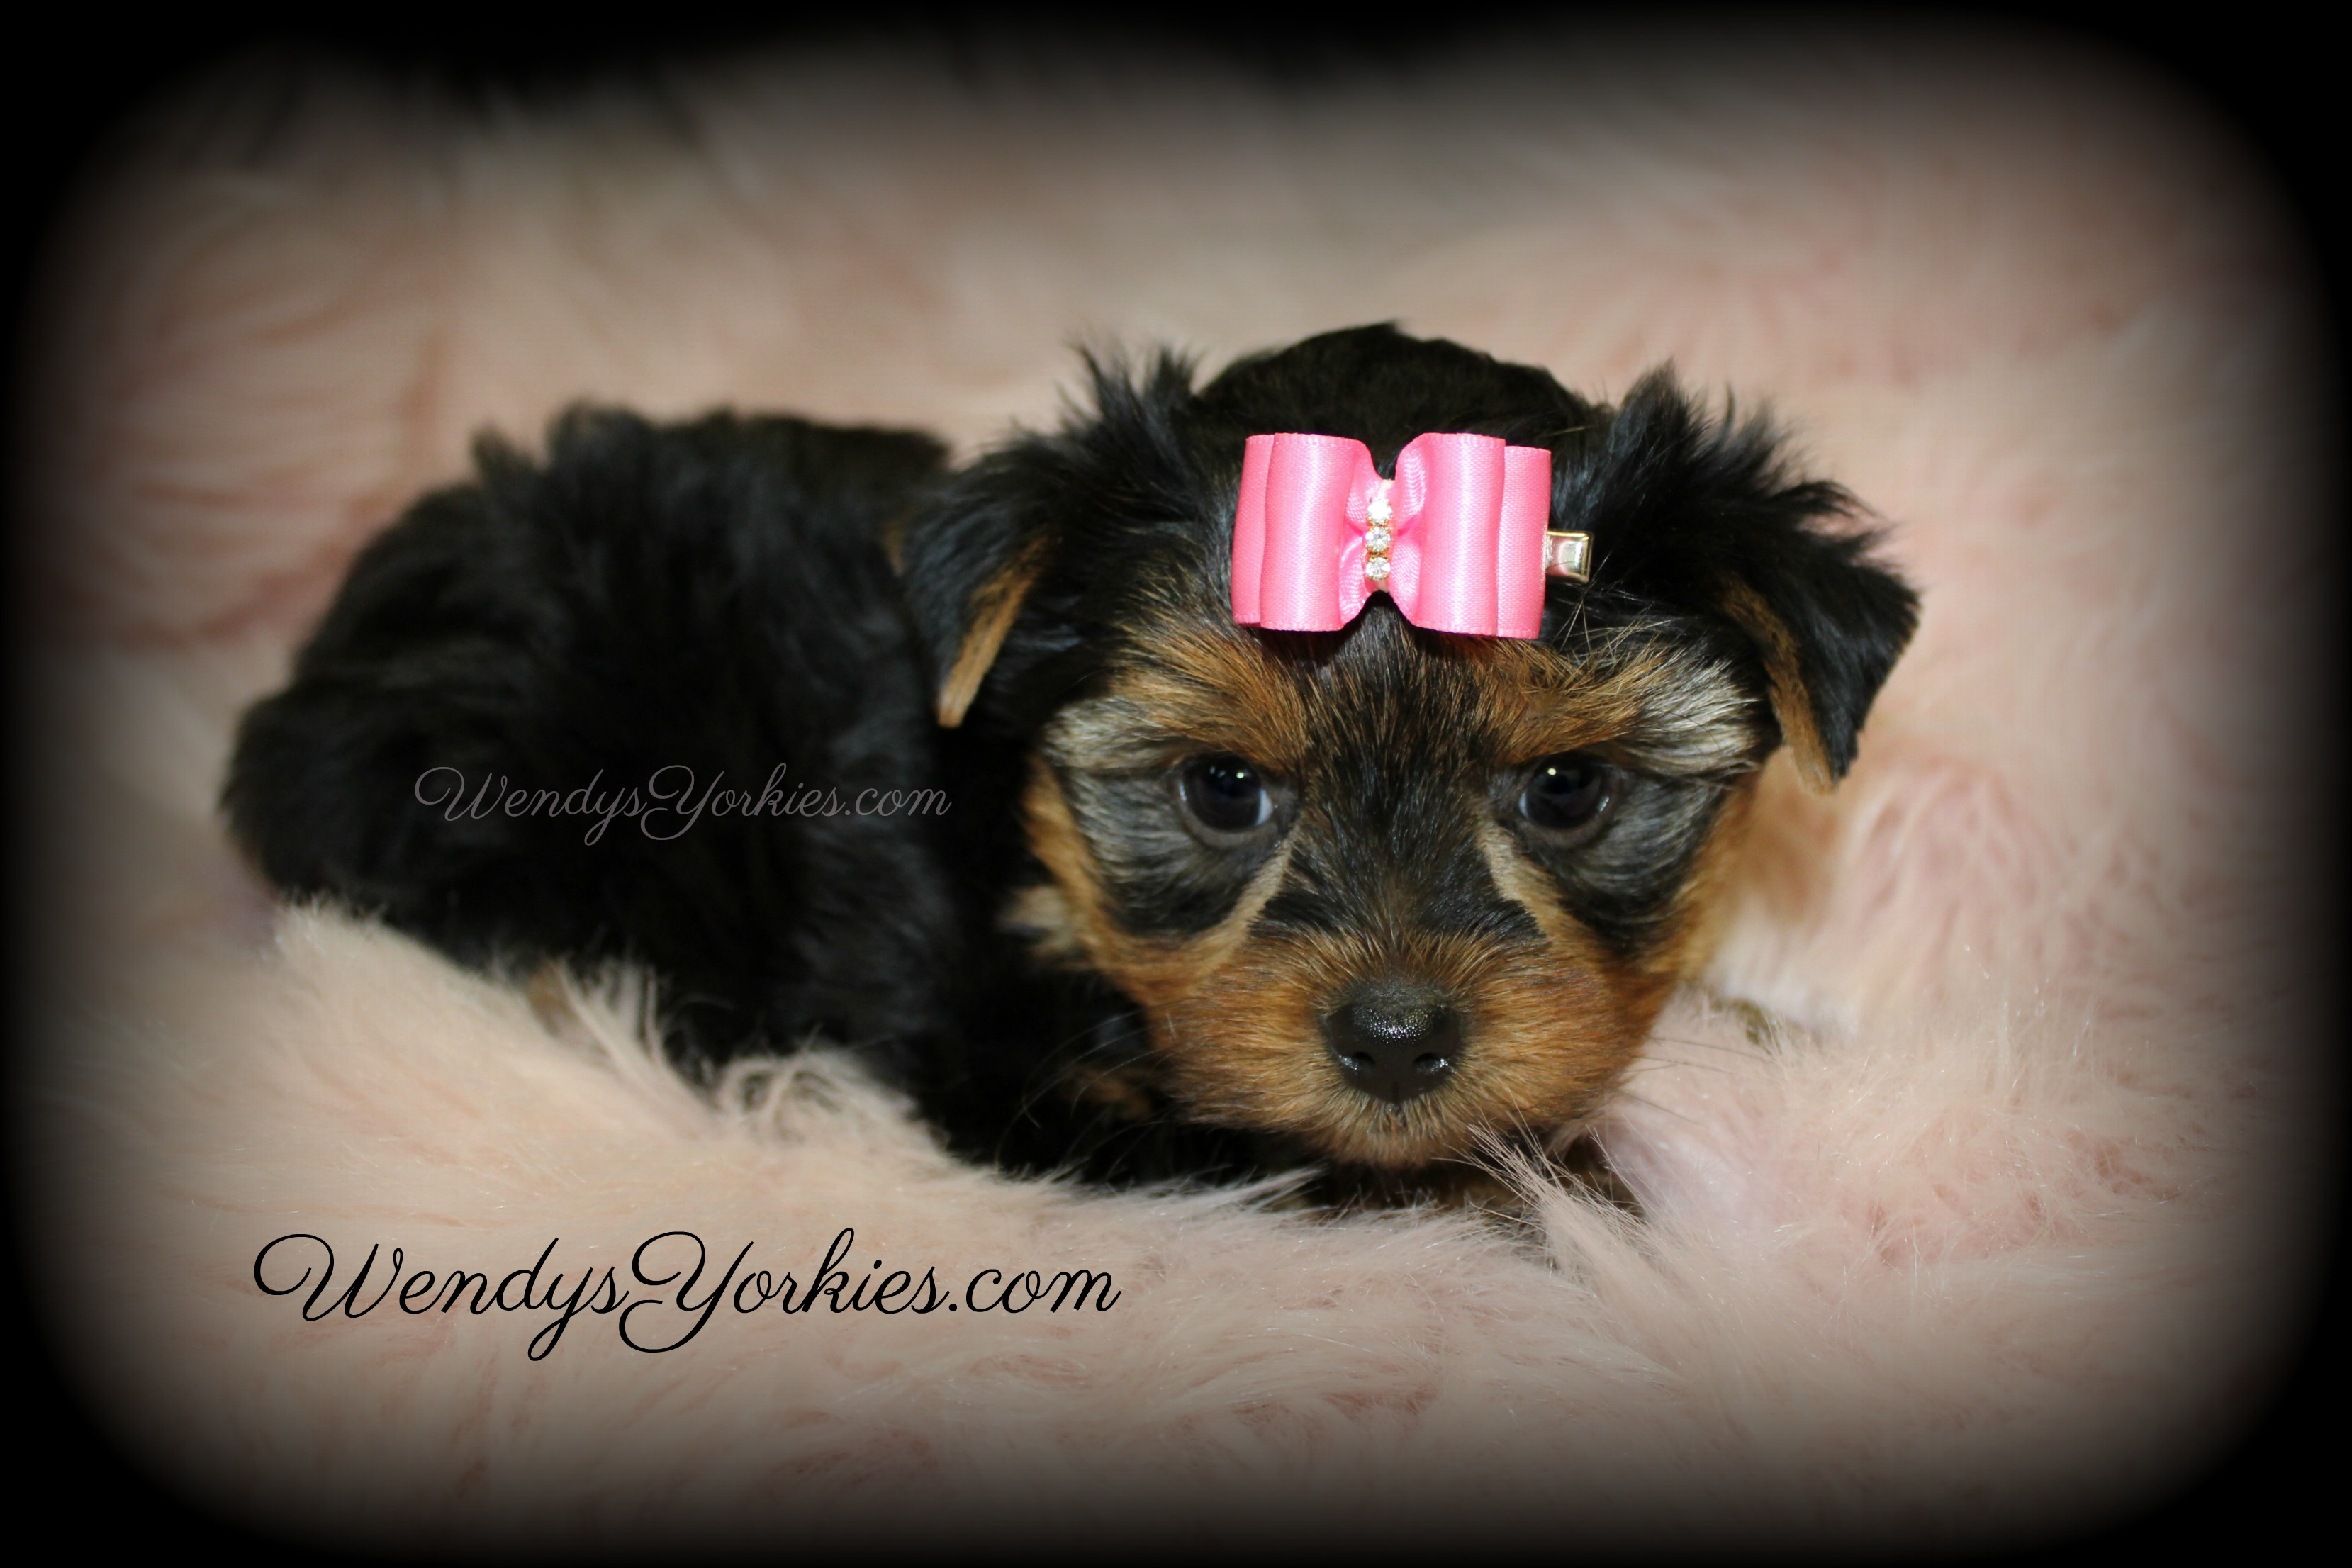 Teacup Toy size Yorkie puppies for sale, WendysYorkies.com, Loulou f2